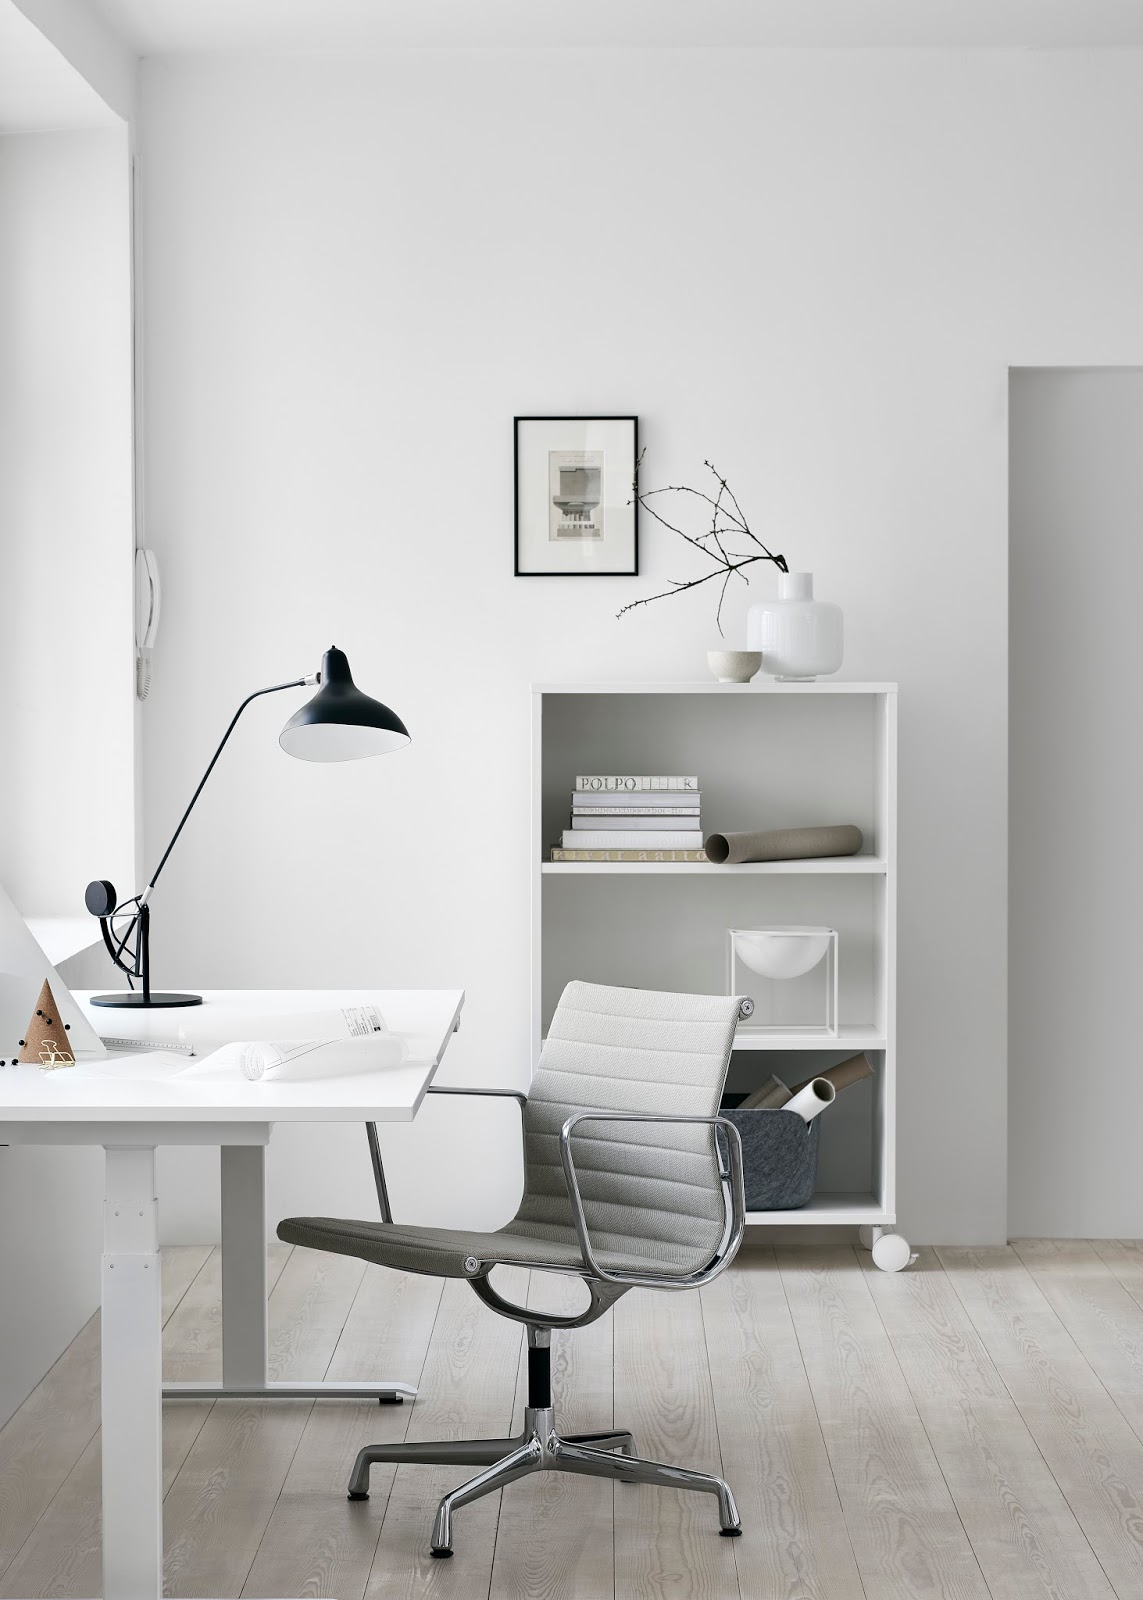 Finnish Design Shop new 24:7 collection. Styling and photography Riikka Kantikoski